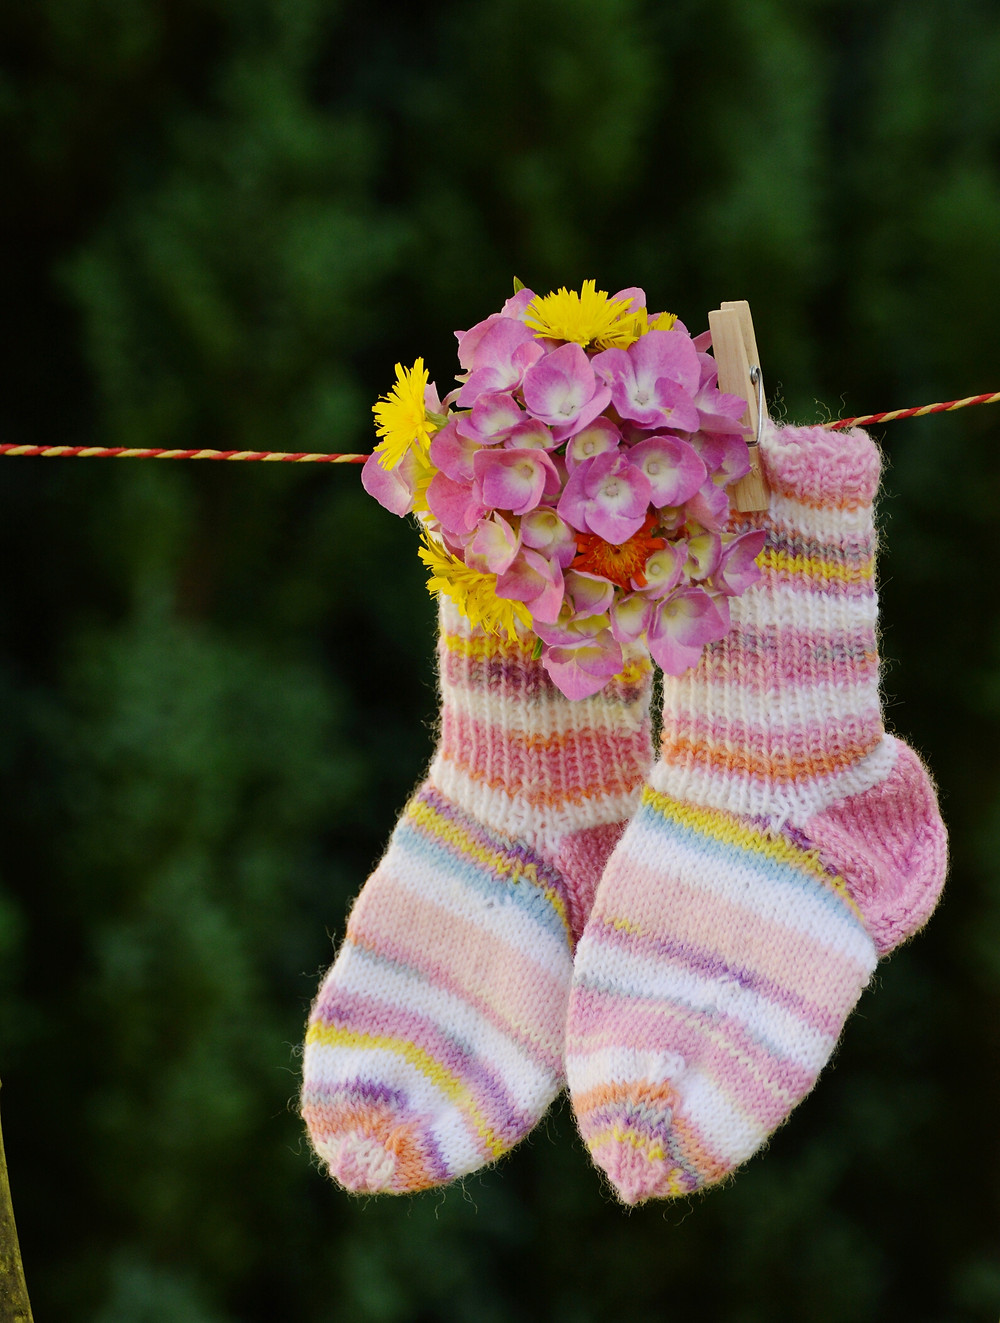 A pair of knitted socks hanging on a clothesline.